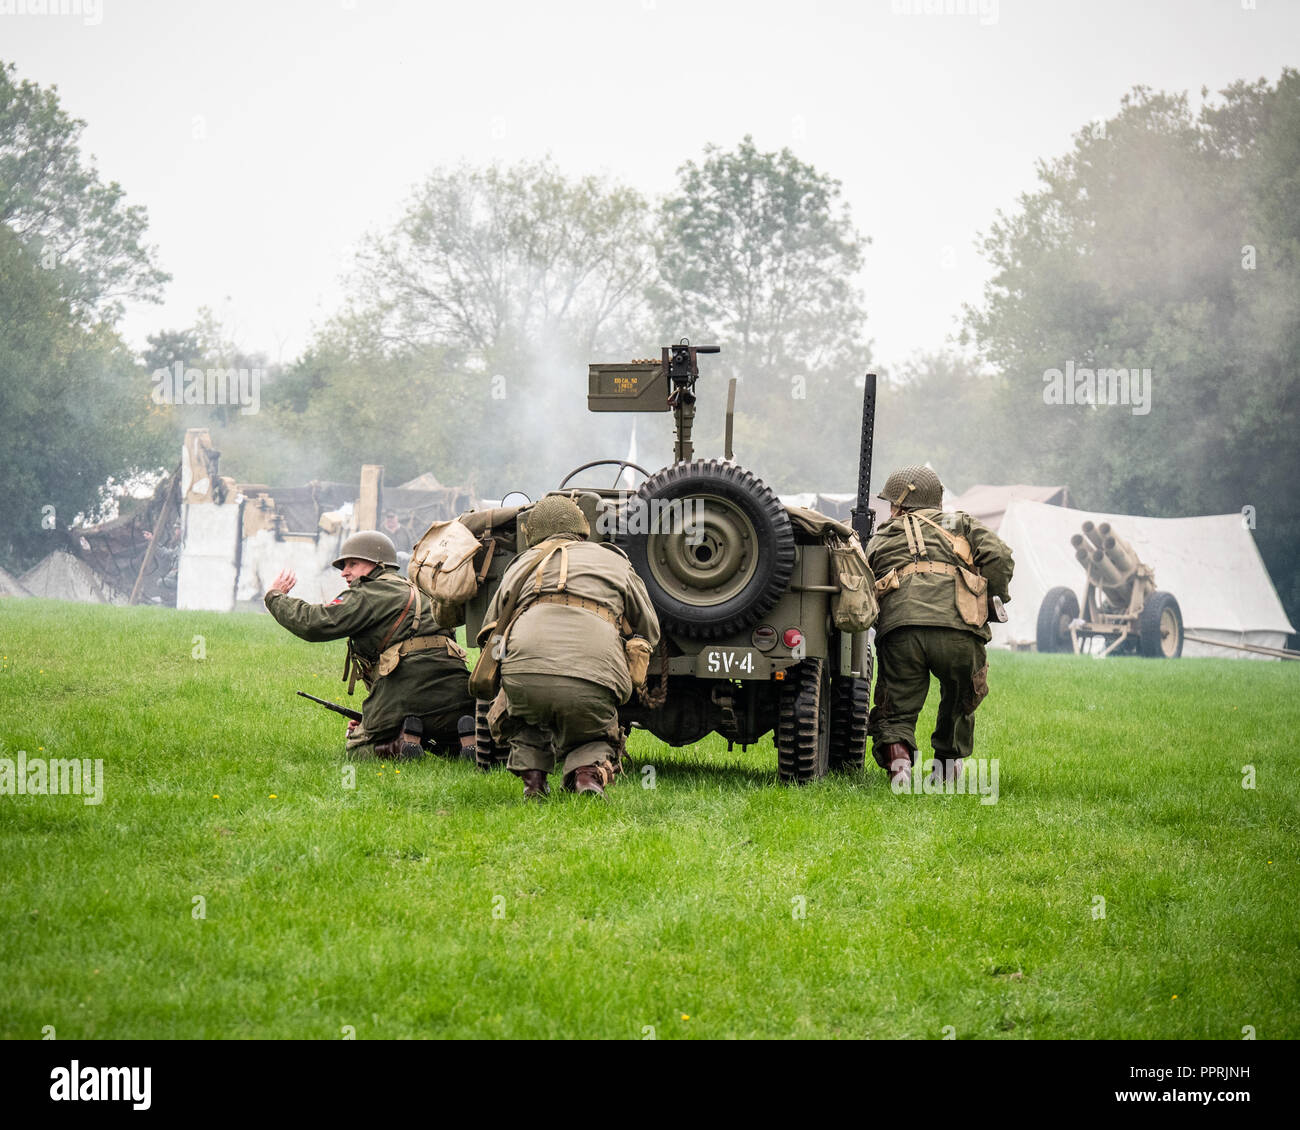 30fccd5a959 Crowle Ealand North Lincolnshire England 1940 s event September 2018.  Action during allied versus axis WW2